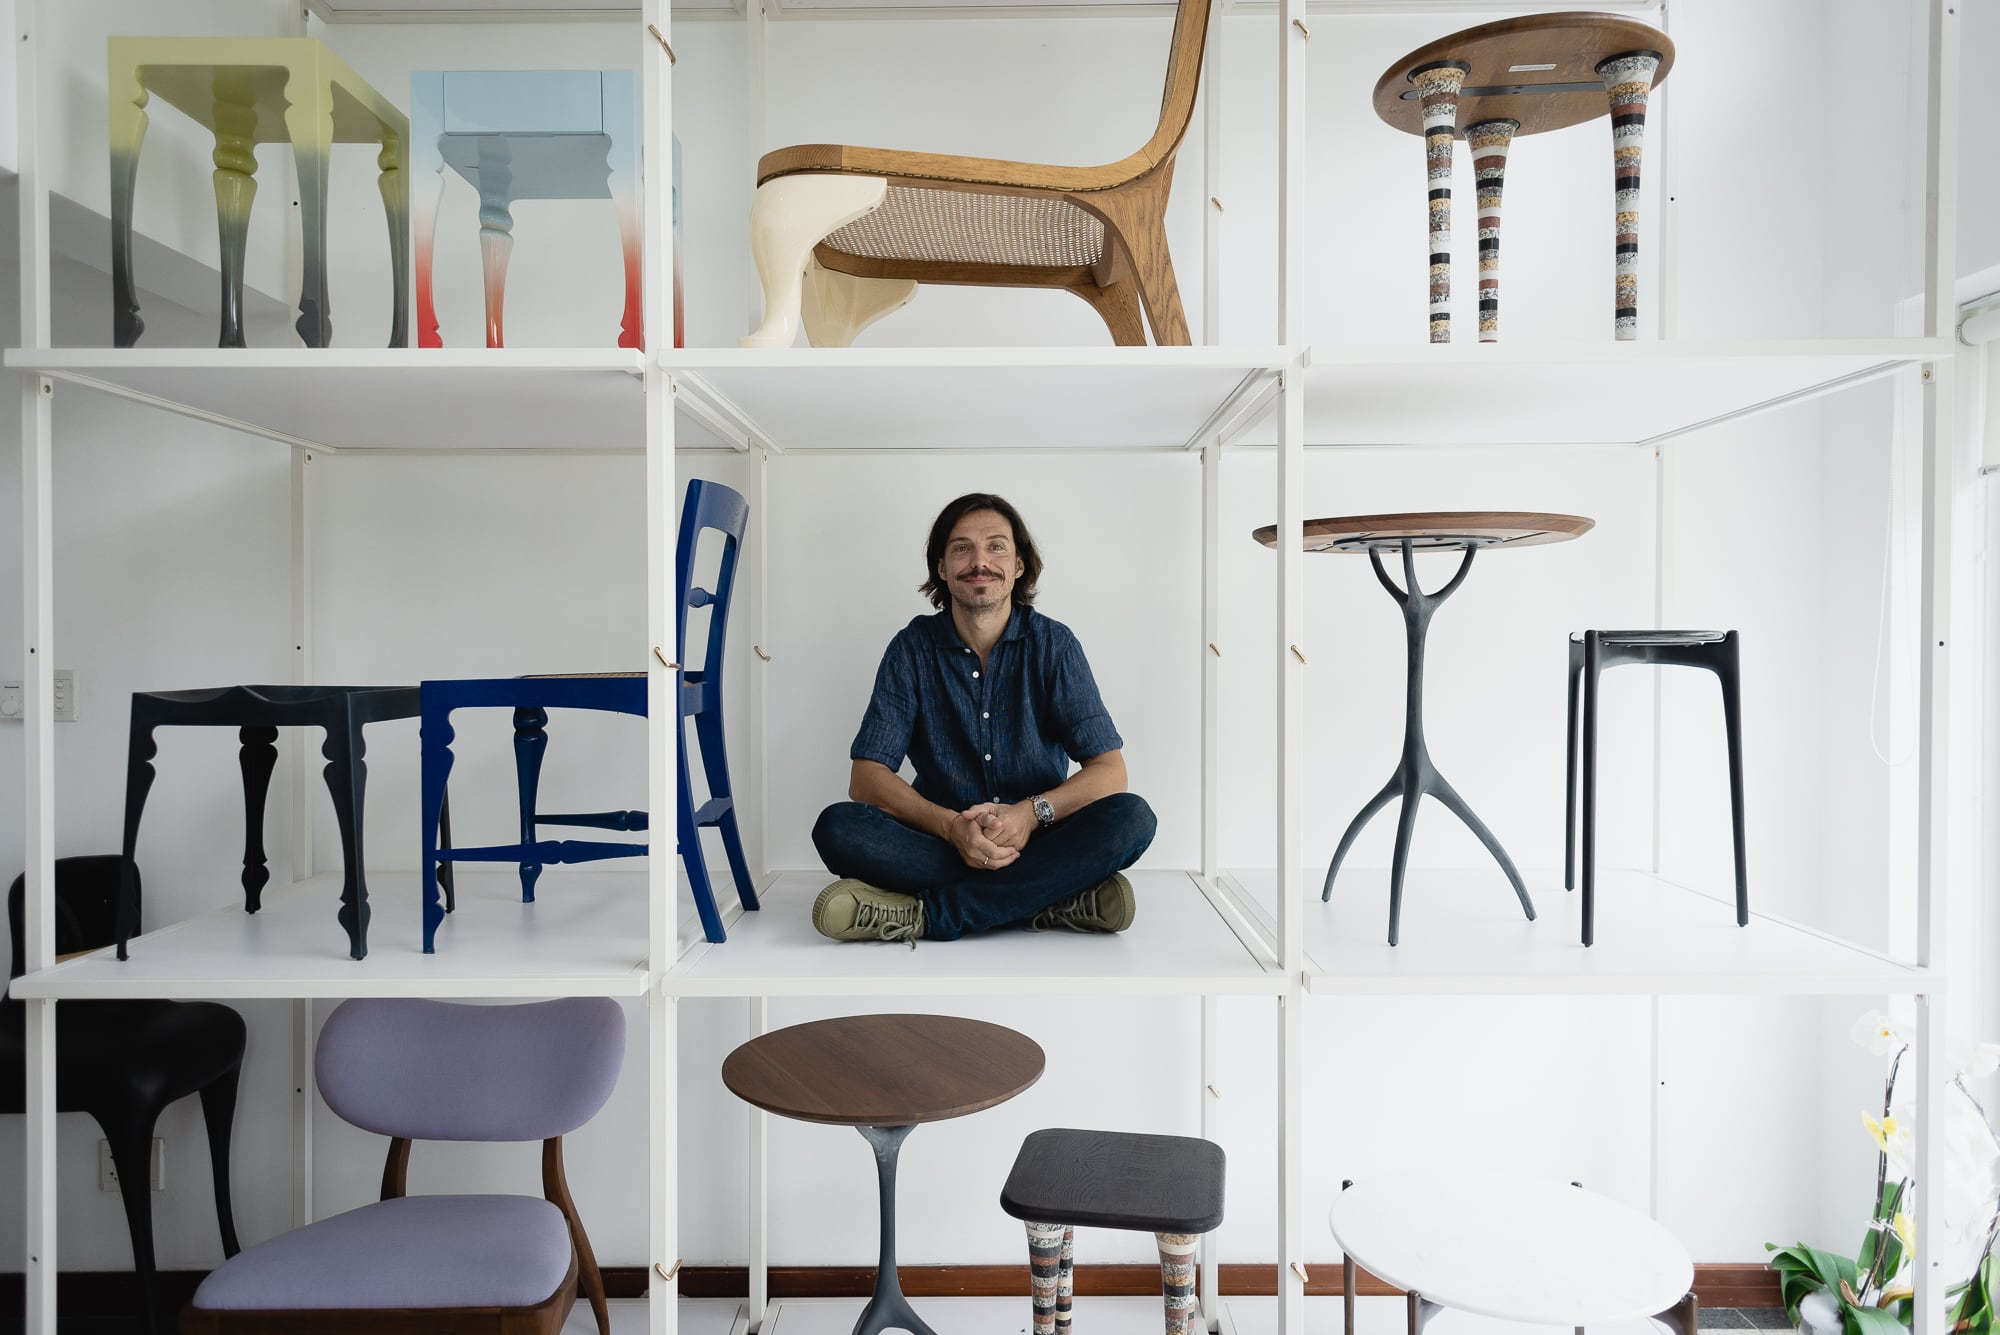 How I Manage: Getting Comfortable With John Reeves At Reeves Design